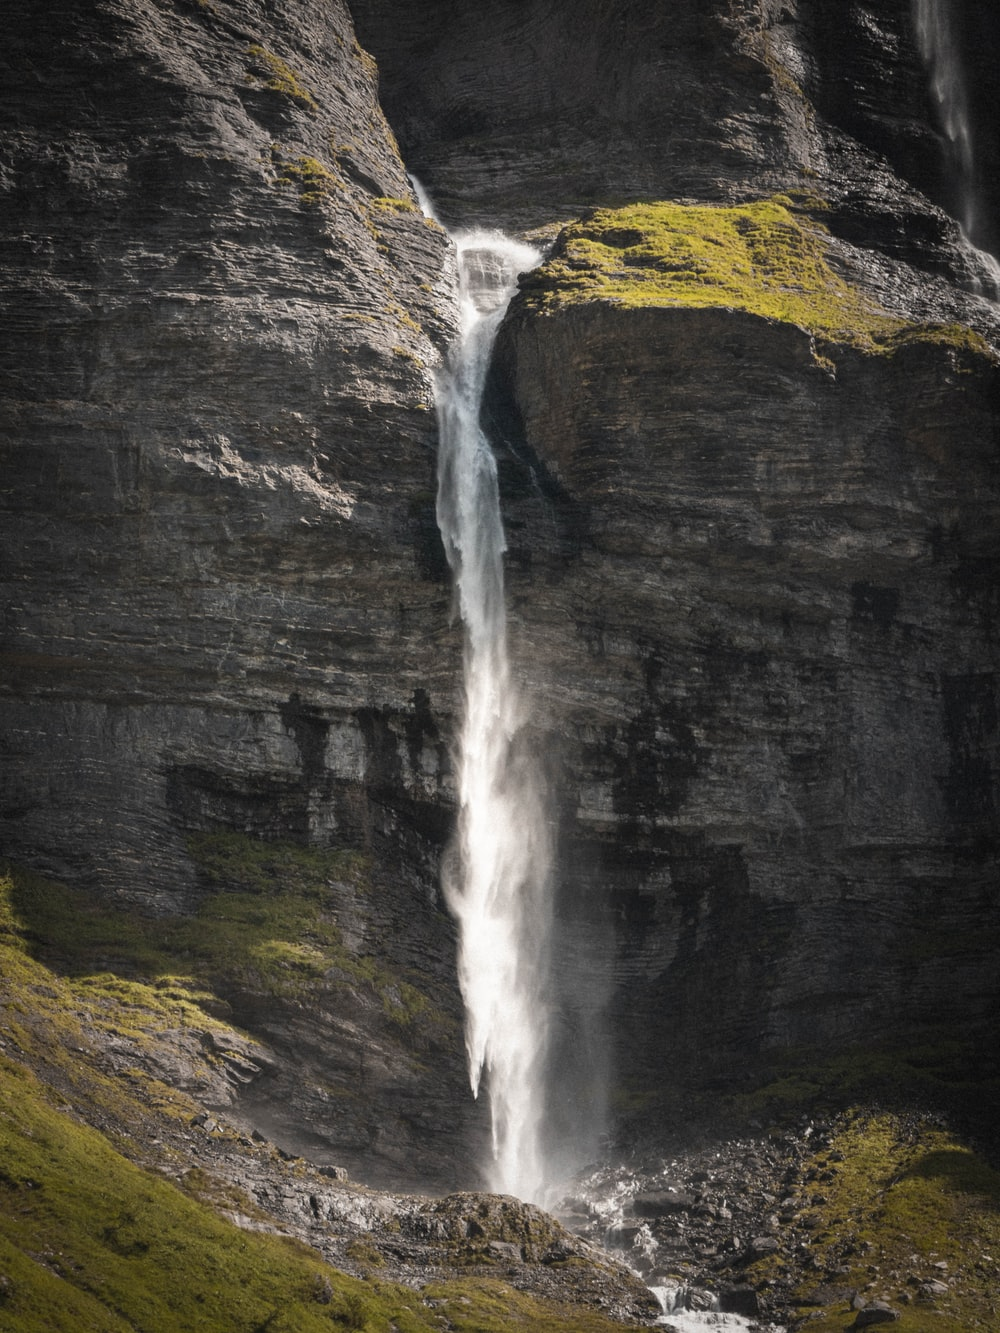 water falls on black and green mountain